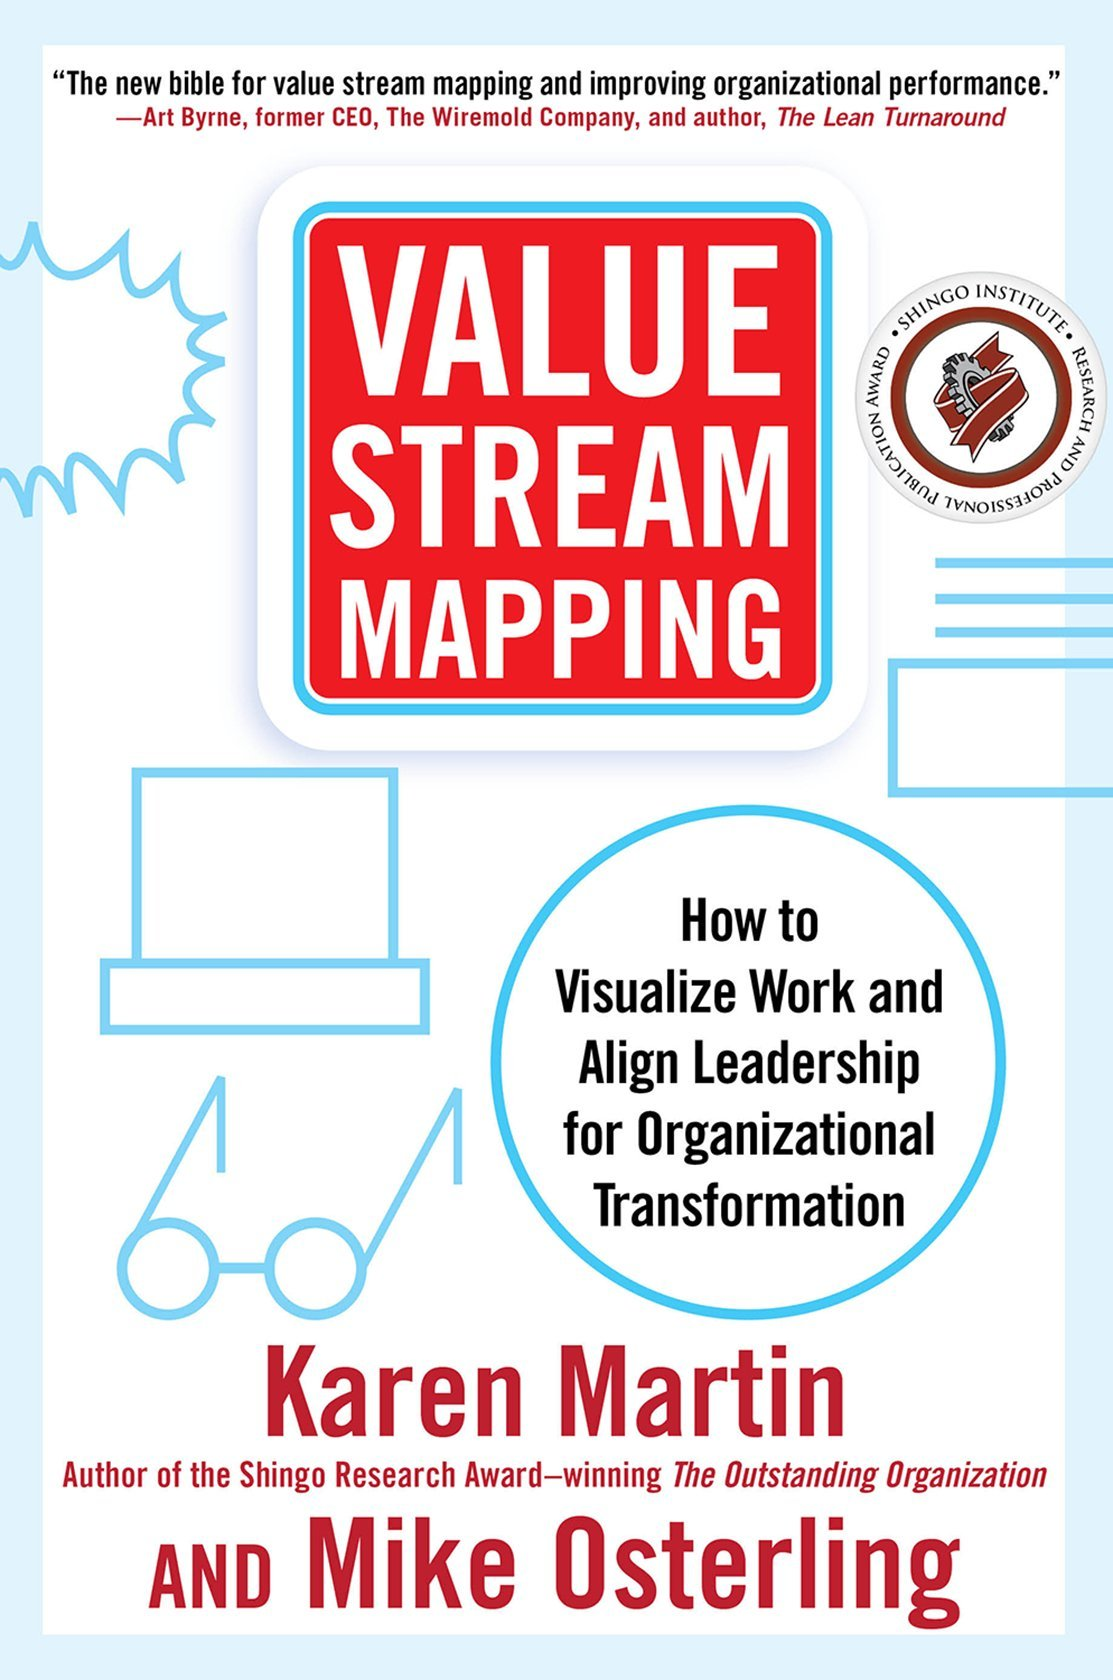 value stream mapping how to visualize work and align leadership value stream mapping how to visualize work and align leadership for organizational transformation business books karen martin mike osterling